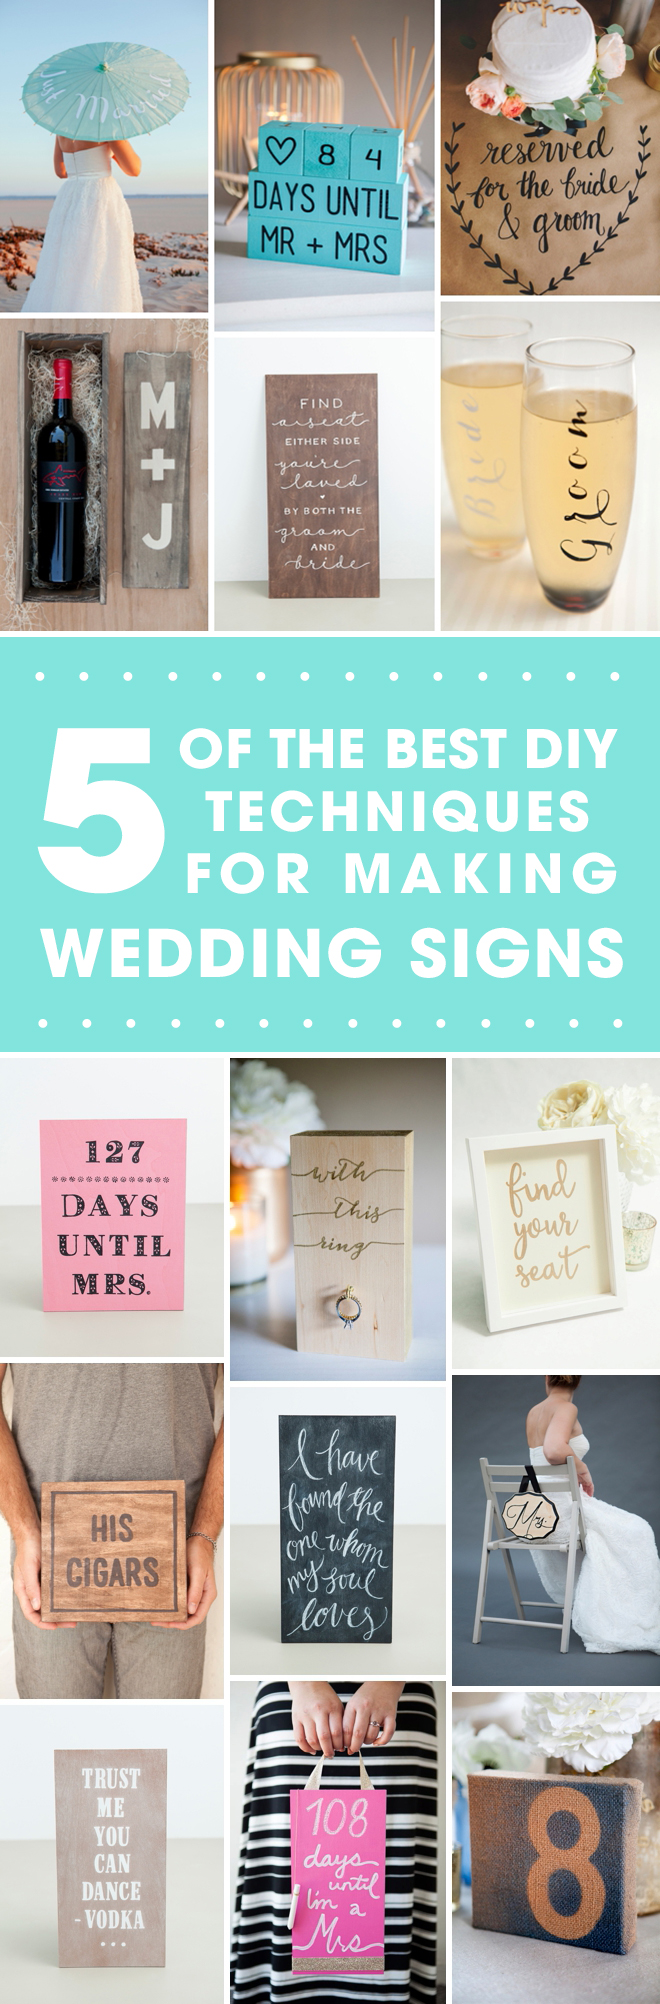 The 5 Ultimate Techniques For Making Wedding Signs!